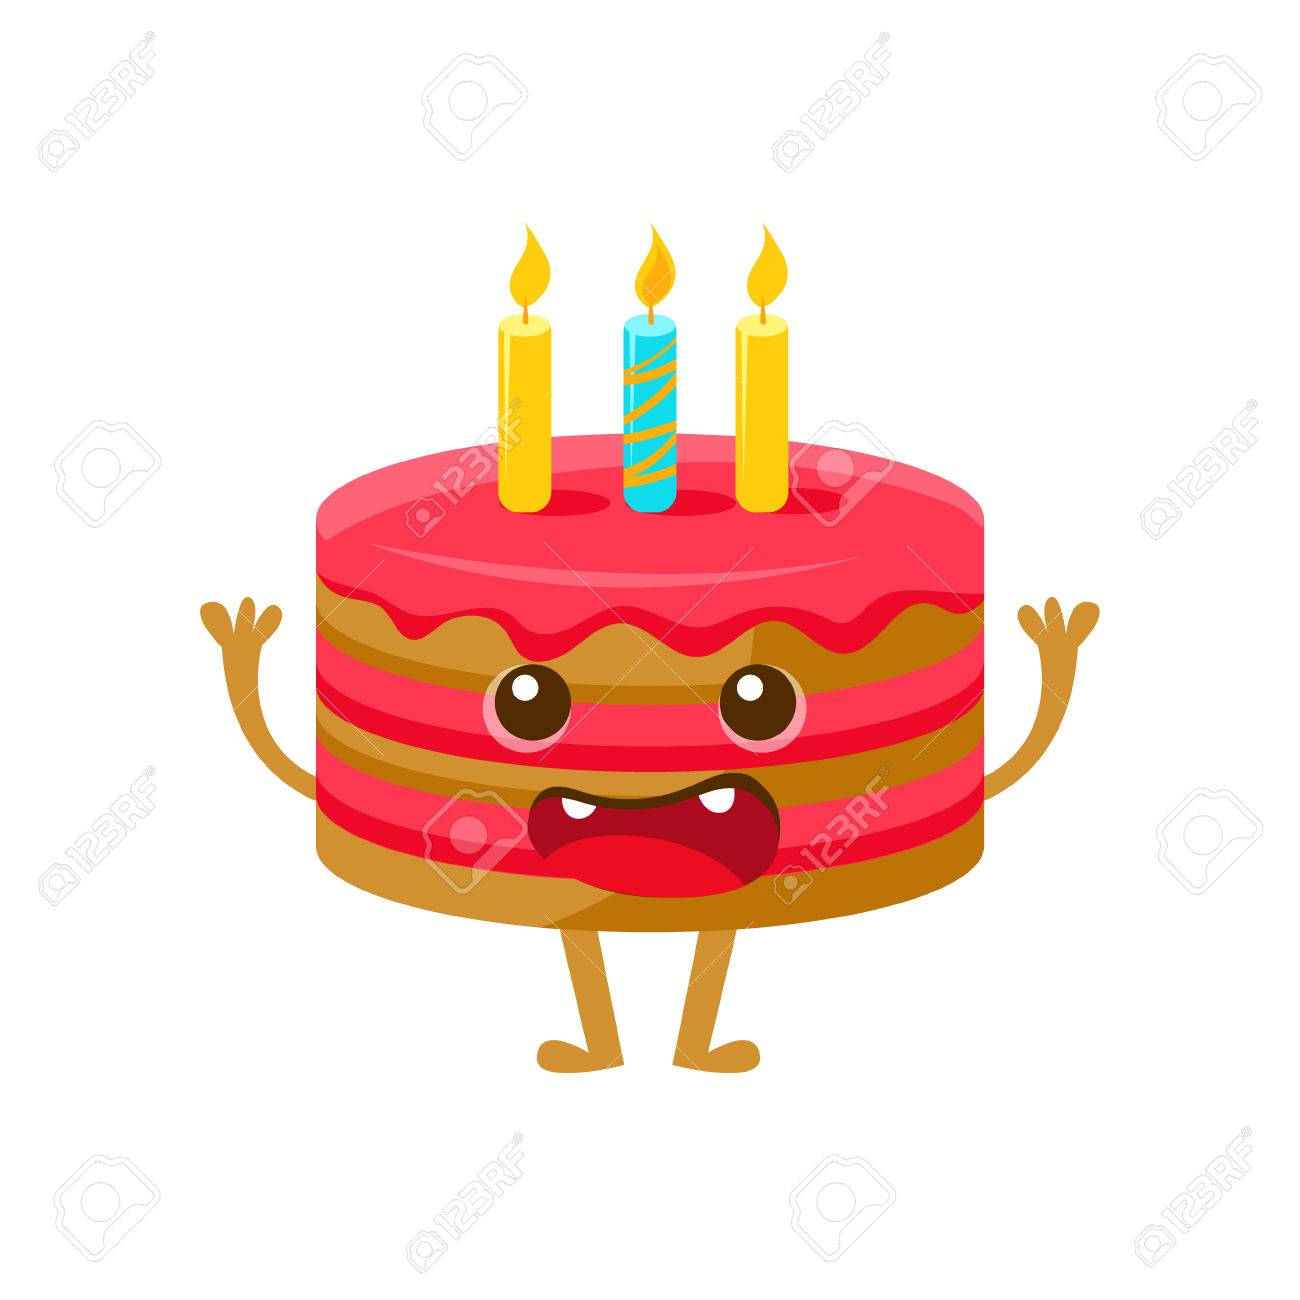 Birthday Cake WIth One Candle Happy And Celebration Party Symbol Cartoon Character Colorful